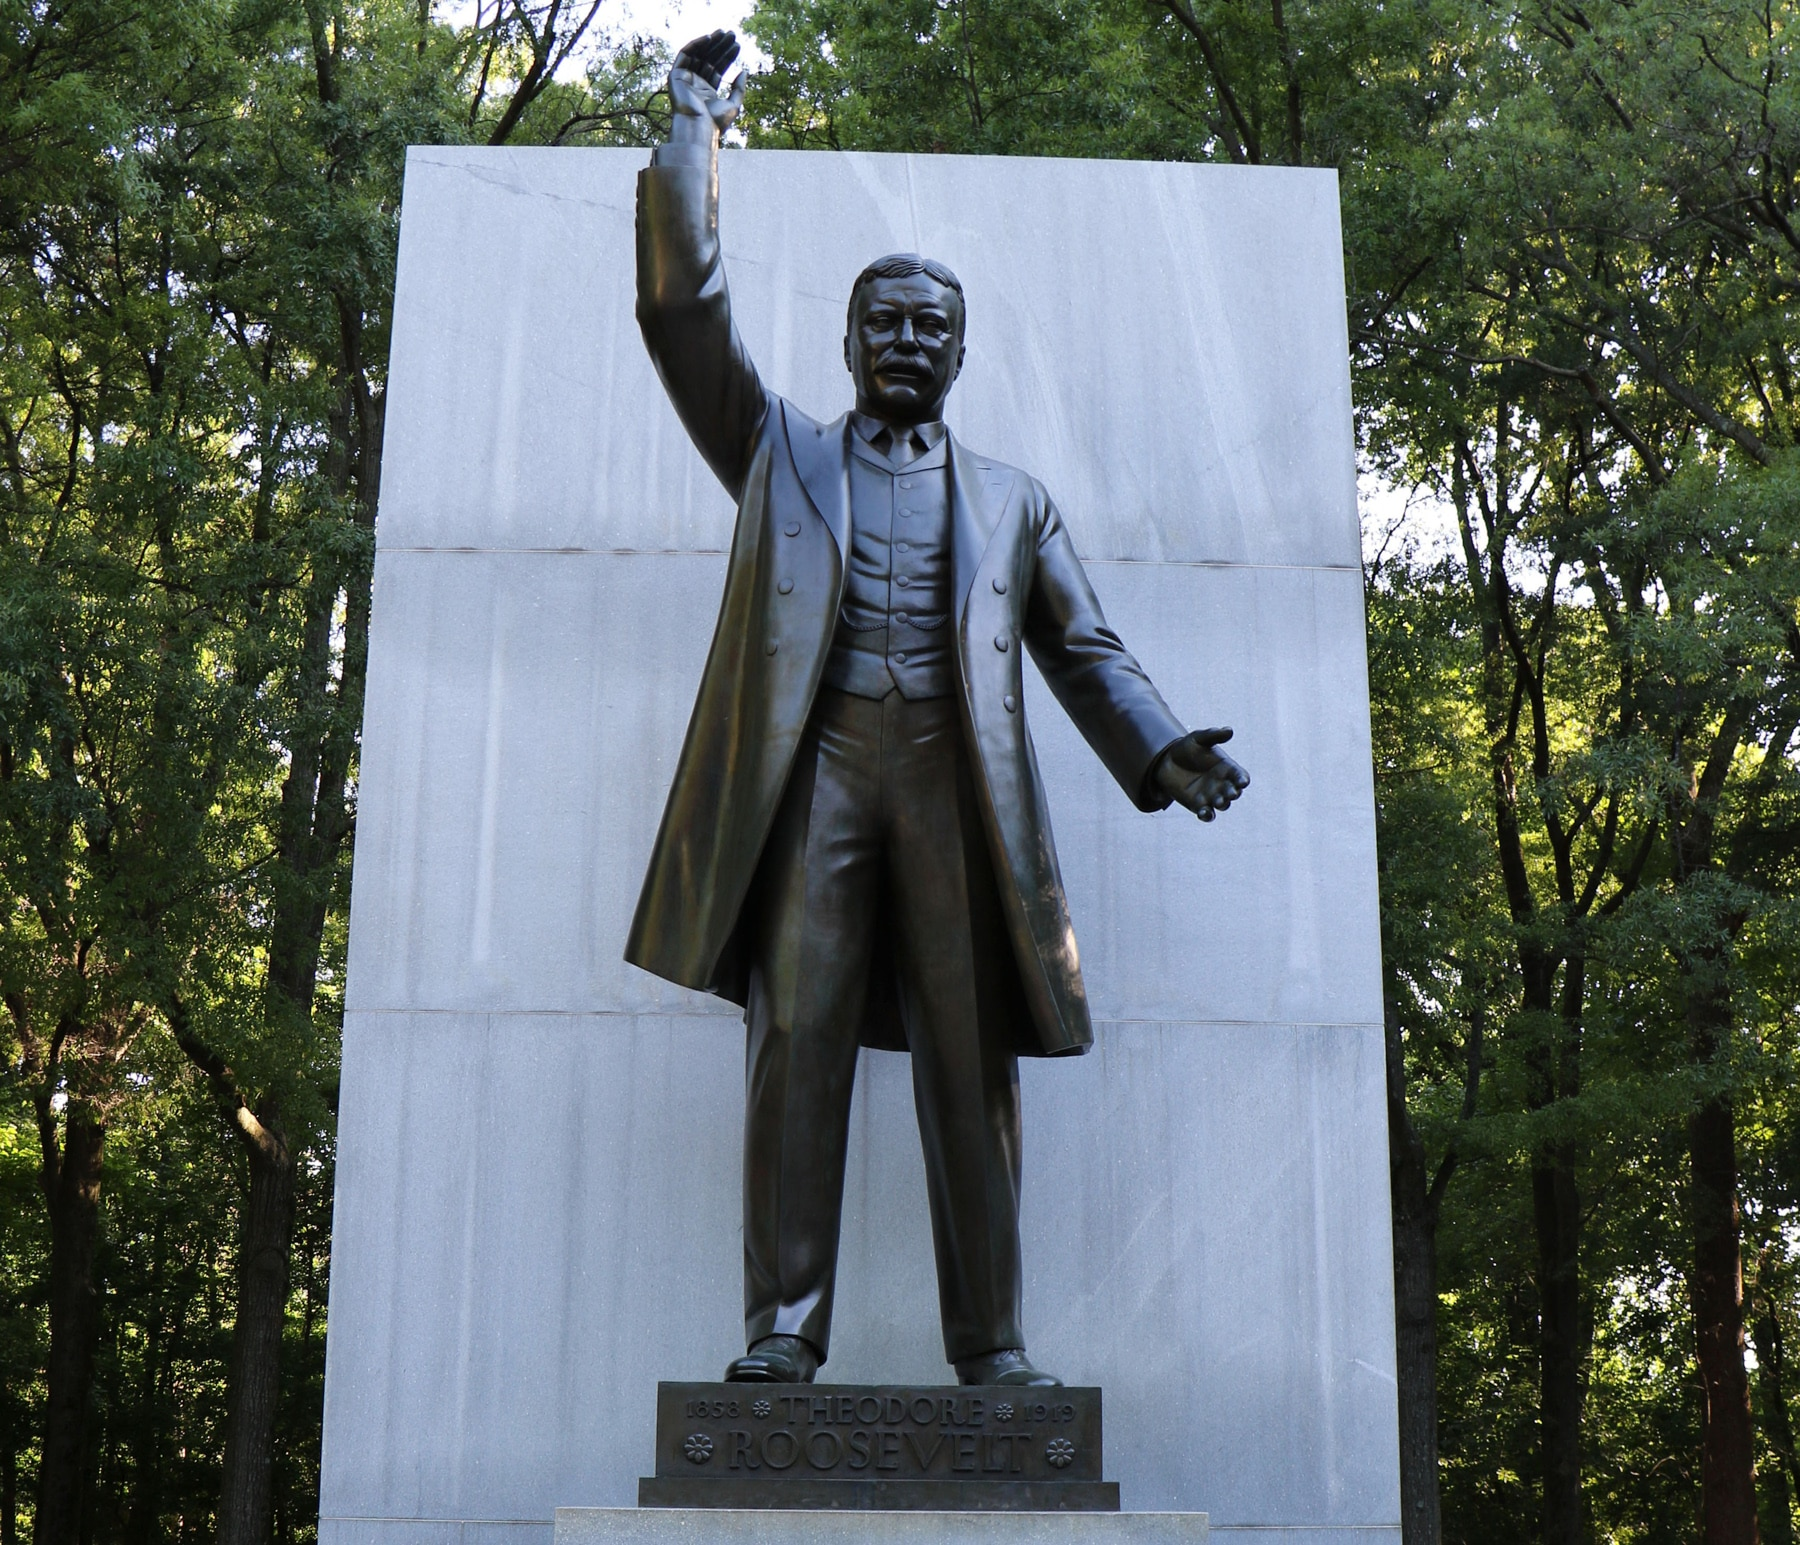 Bronze statue of Theodore Roosevelt with raised hand in front of large stone slab (National Park Service)